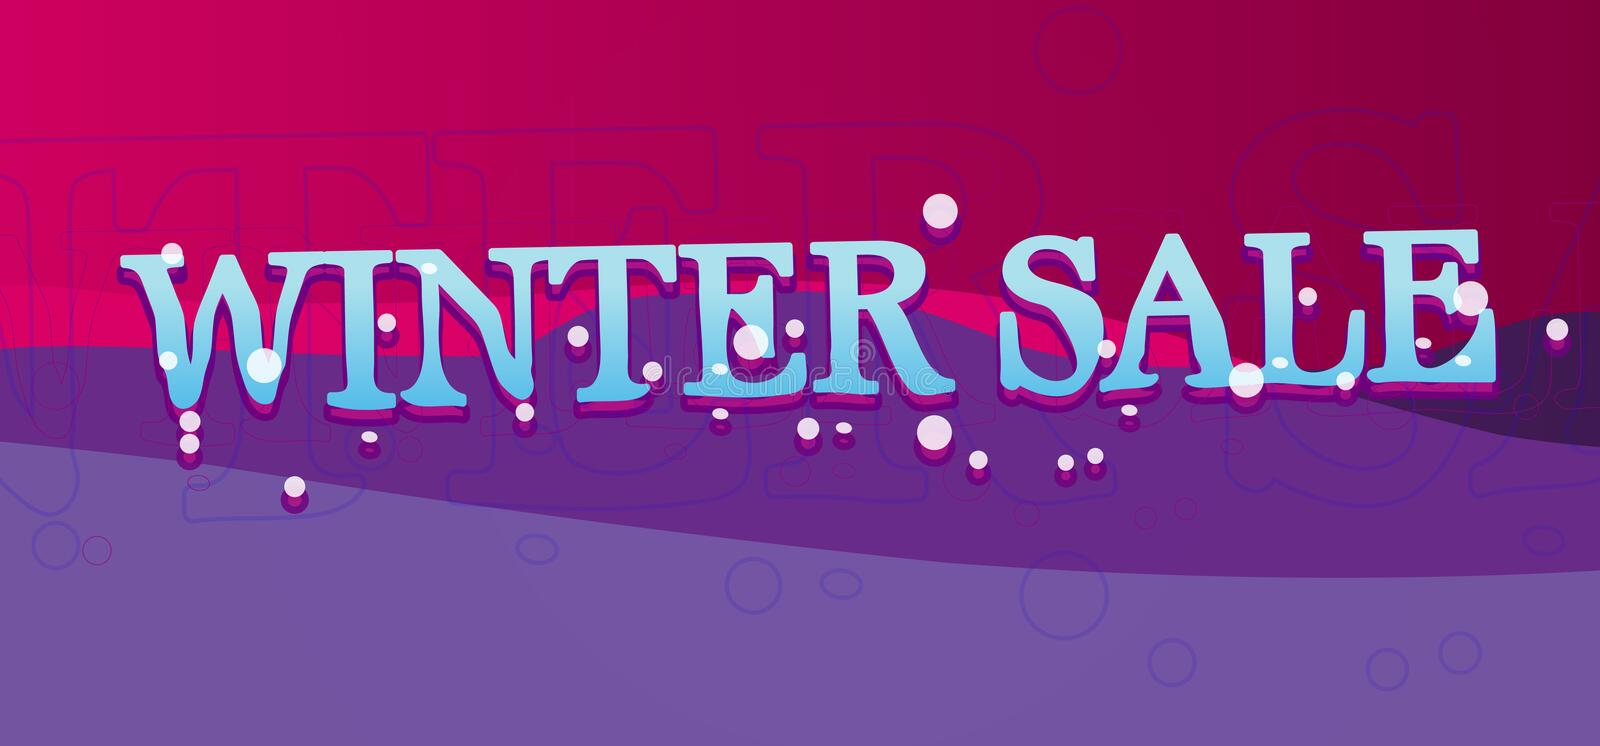 Download Winter Sale Banner stock photo. Image of purple, snow - 24845358